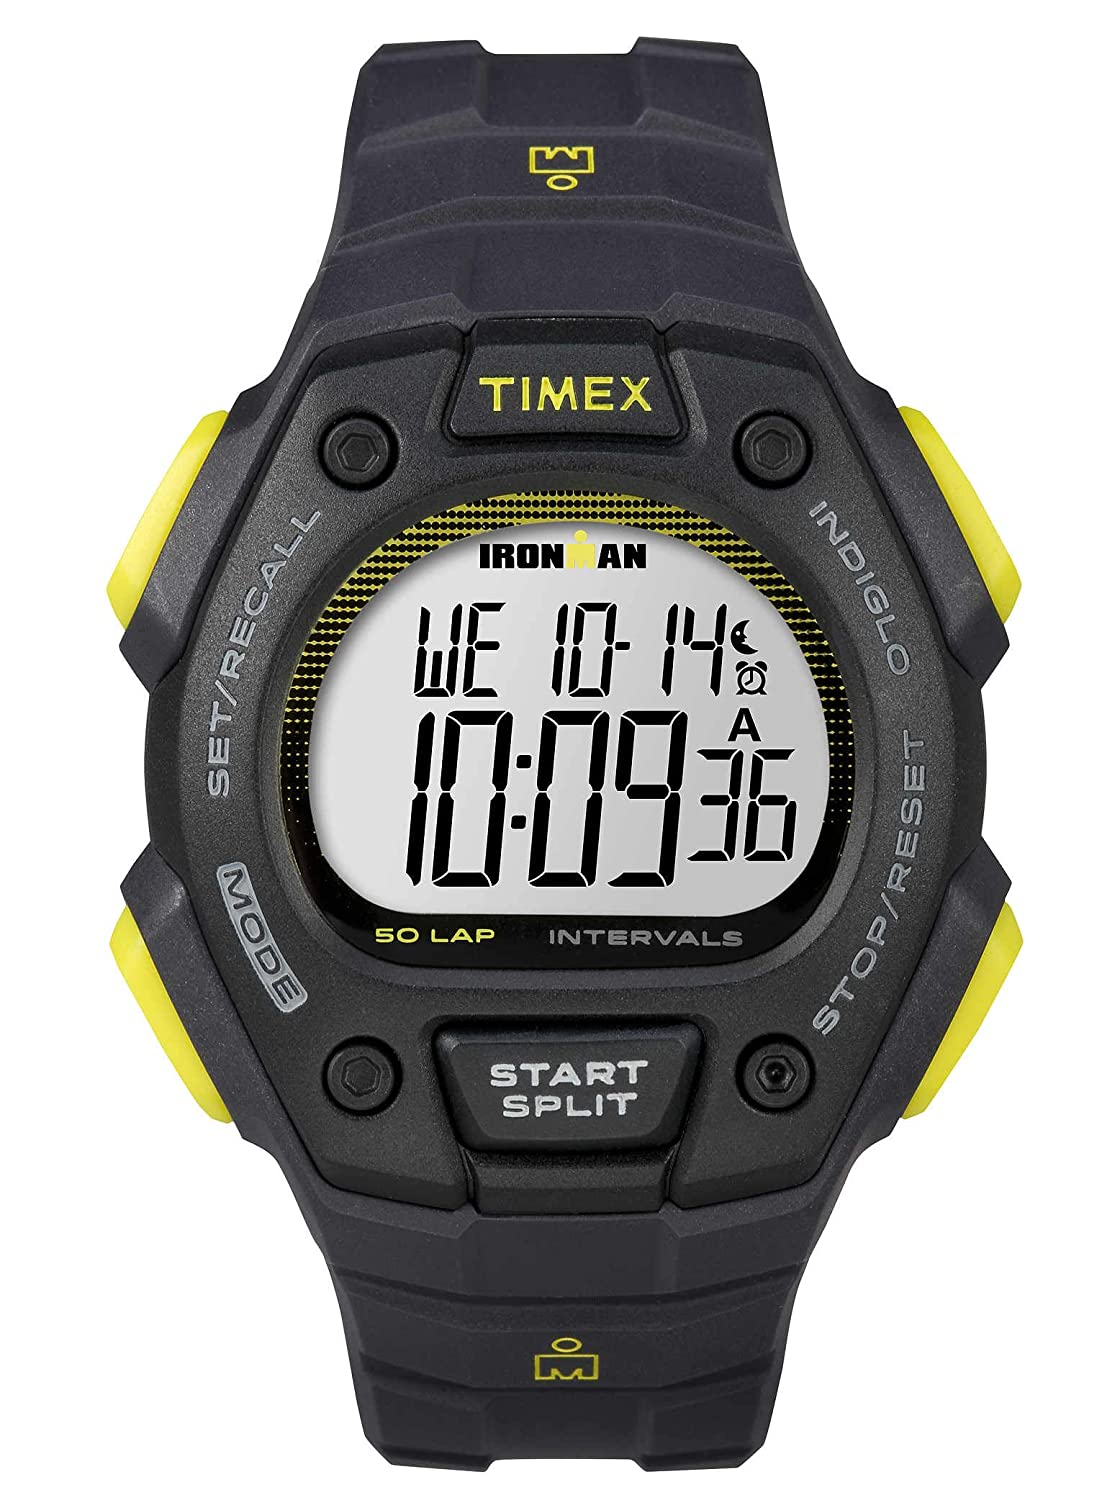 Amazon.com: Timex Classic 50 lap Ironman Digital Watch - Men's: Timex: Sports & Outdoors